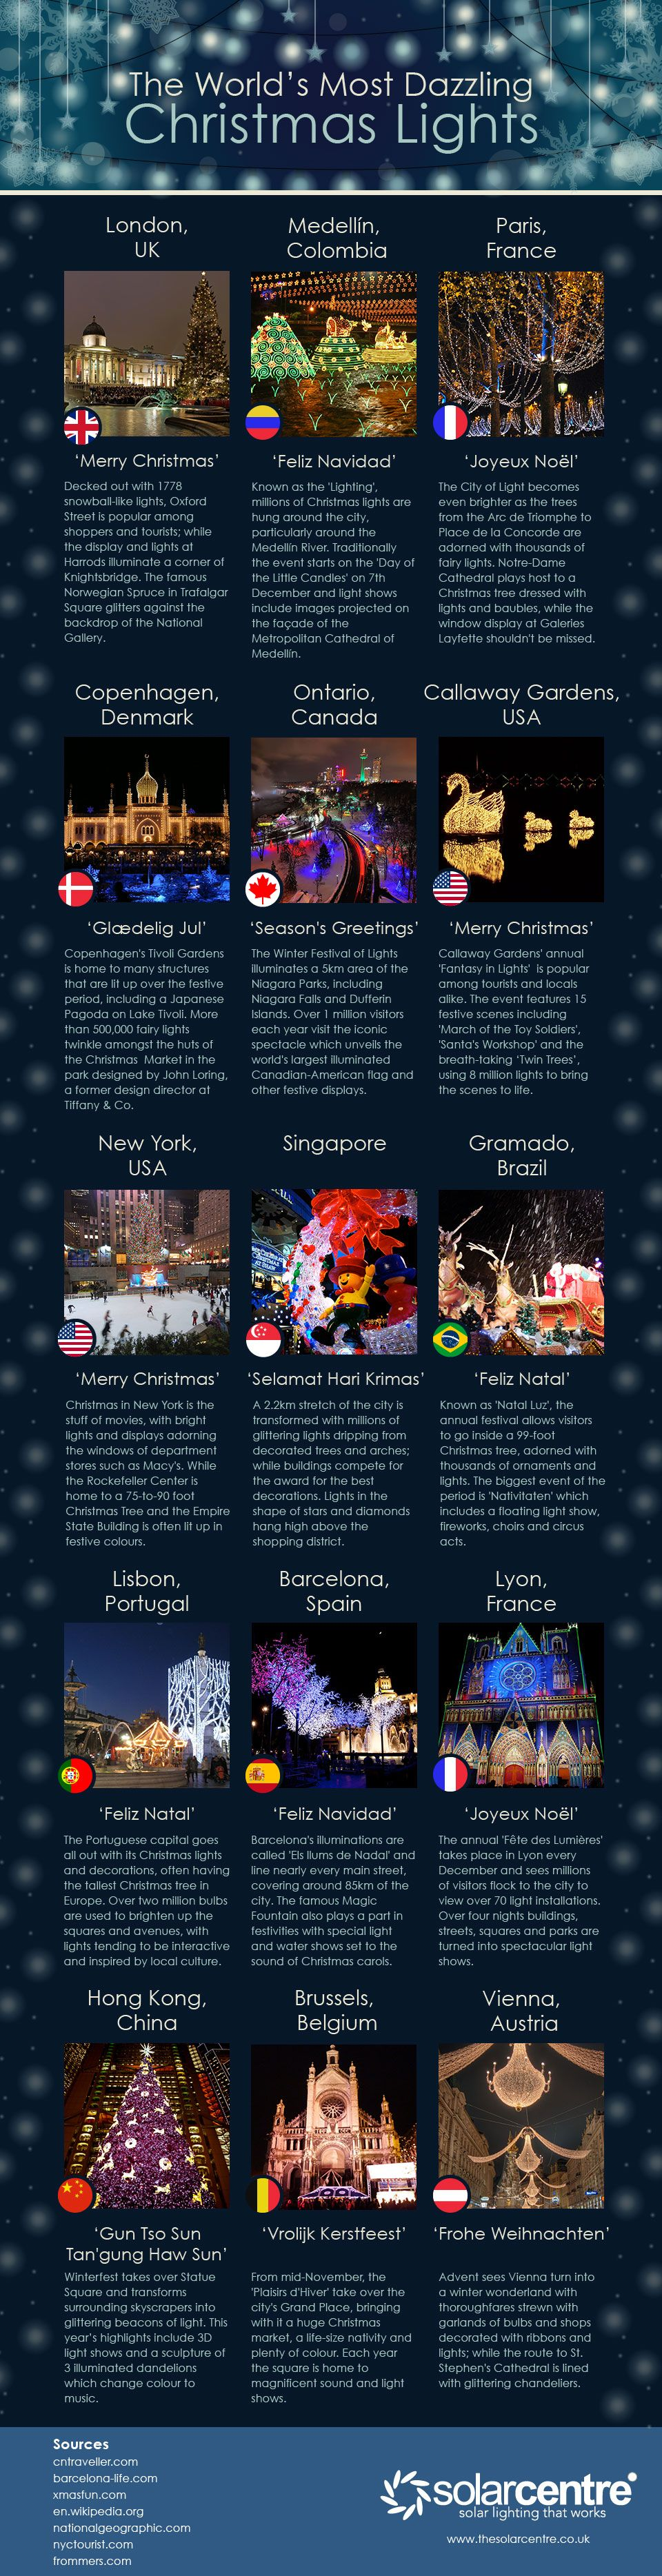 The World's Most Dazzling Christmas Lights #infographic